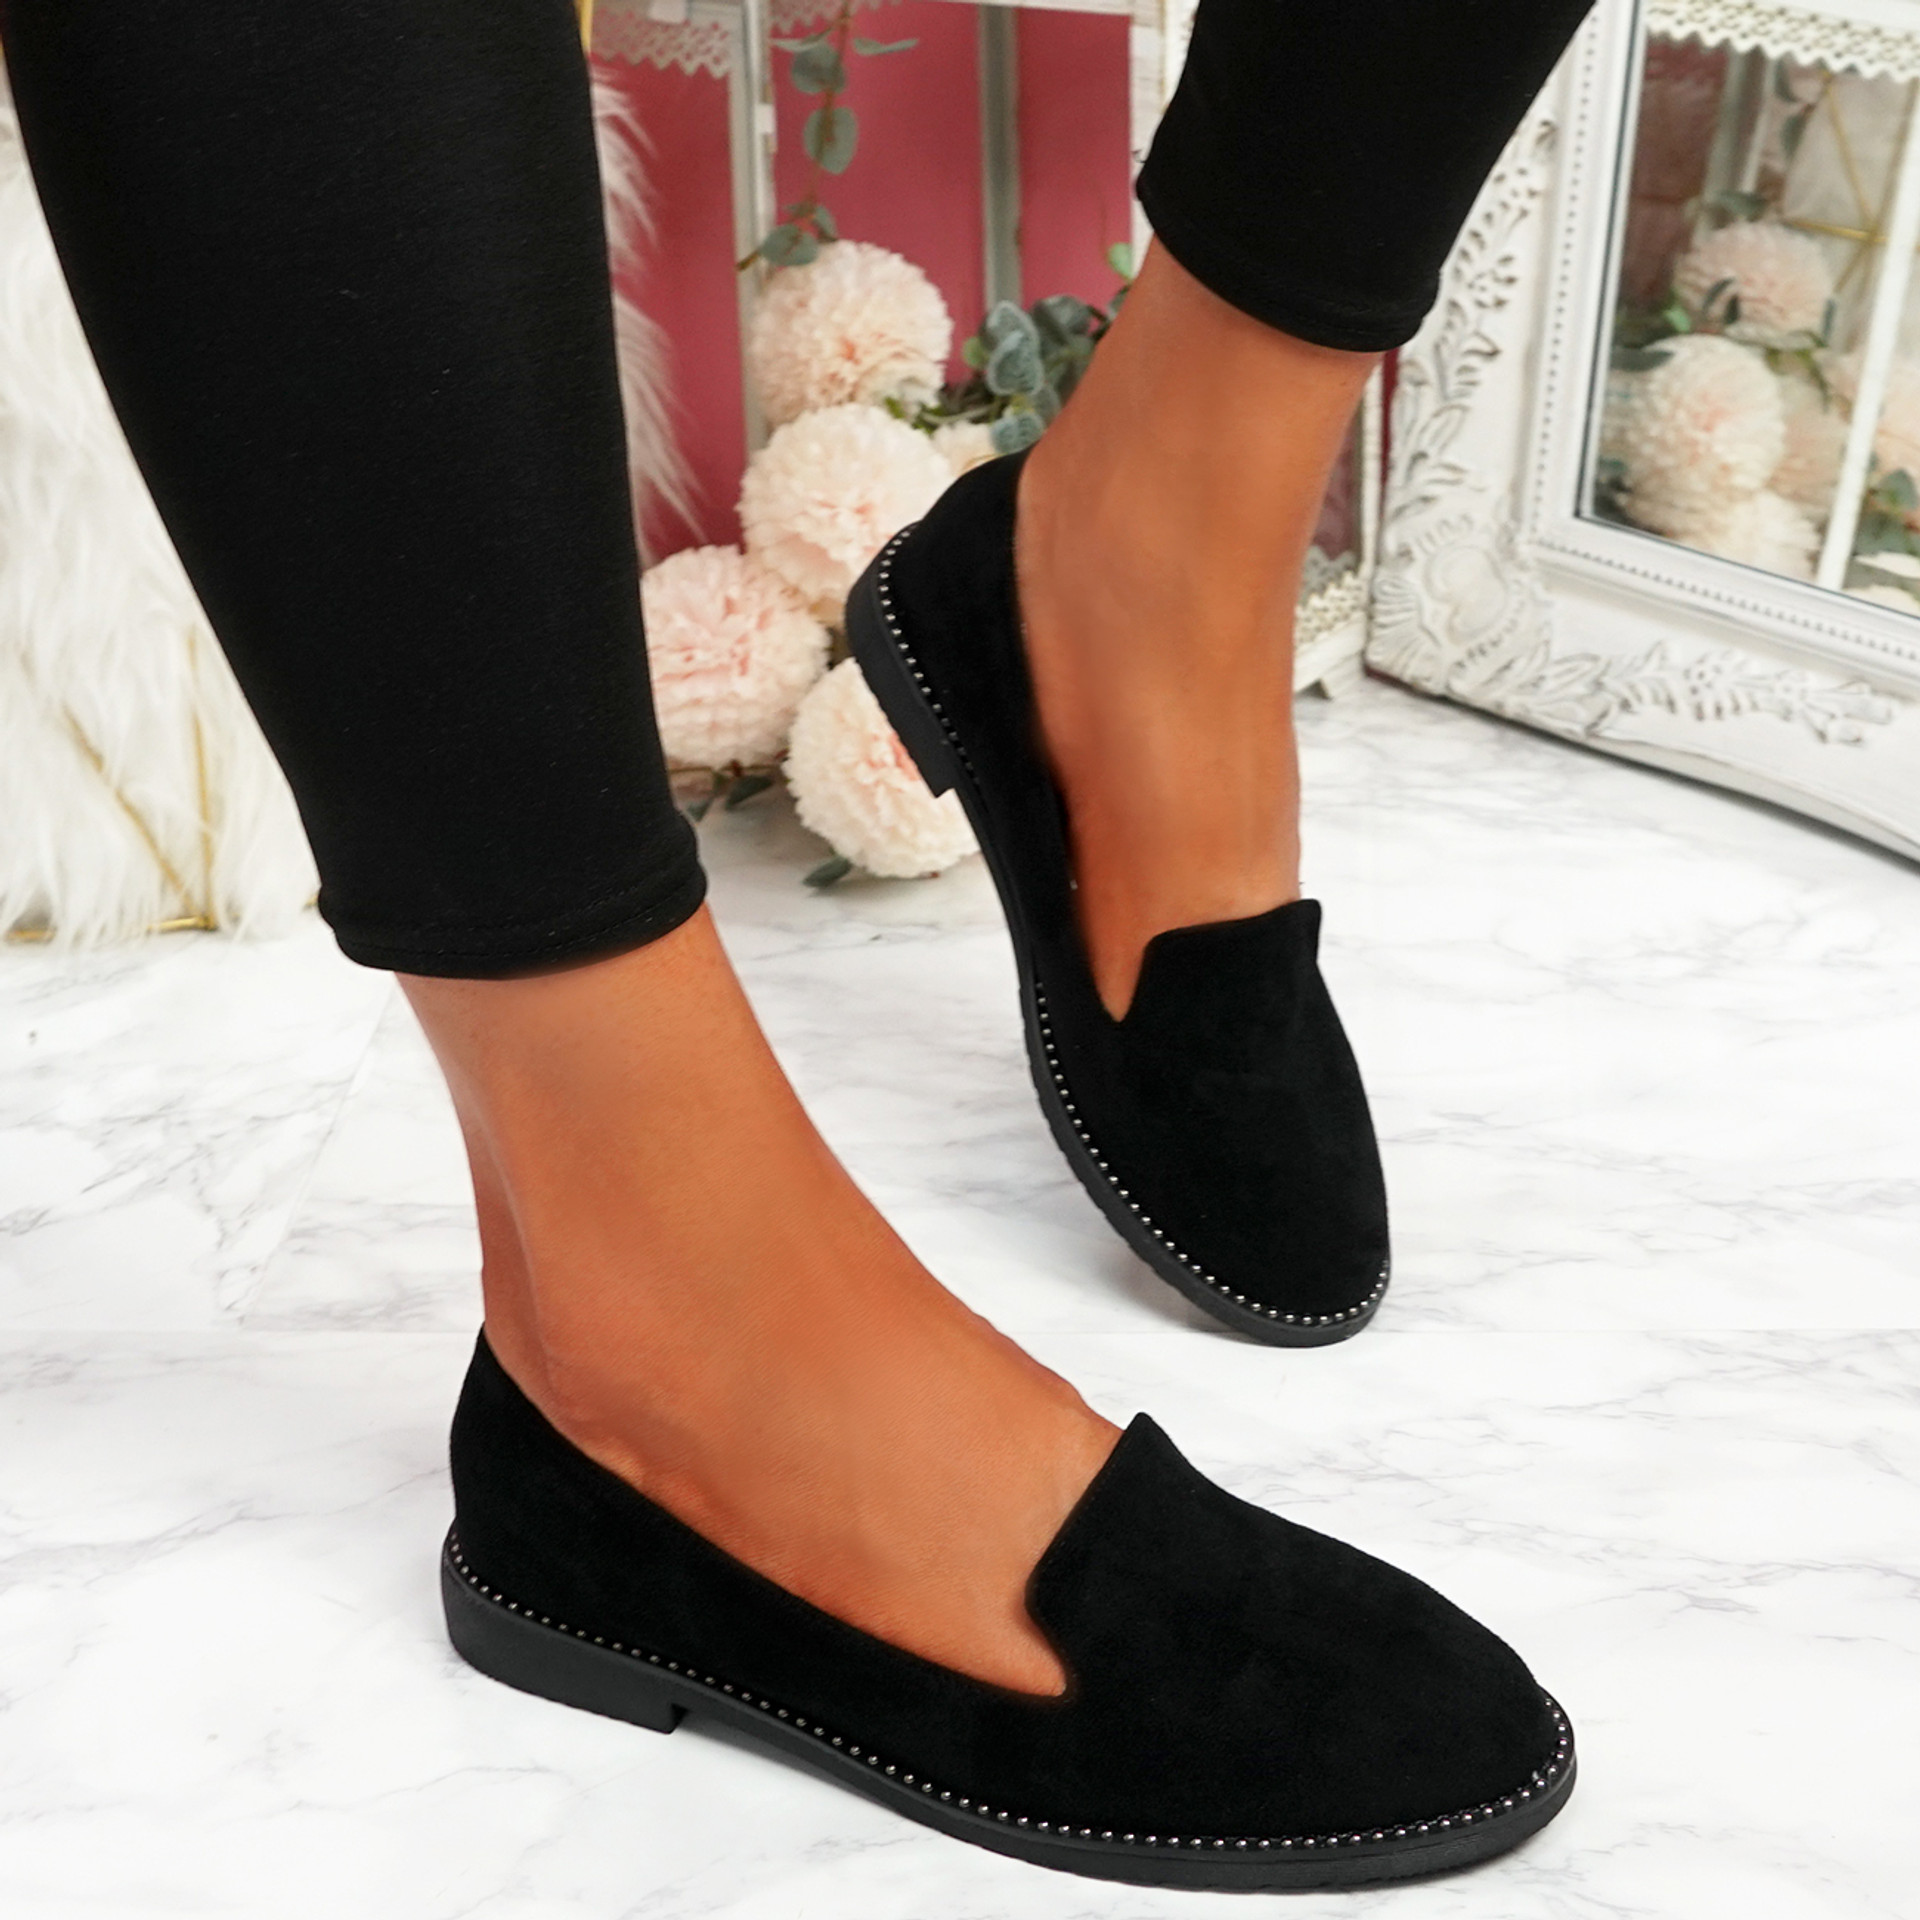 Grety Black Studded Ballerinas